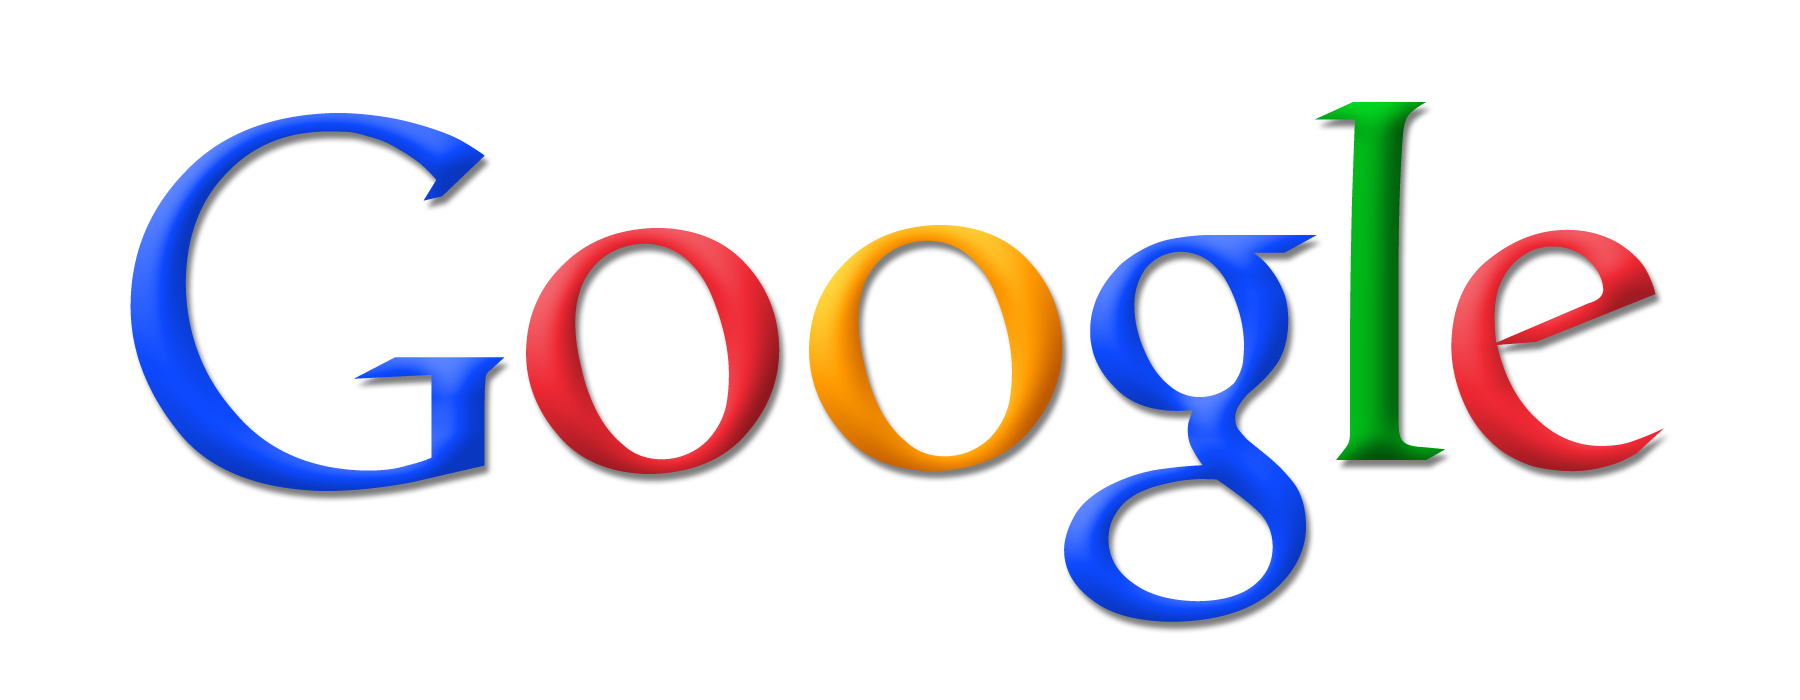 Google logo white png. New high quality image